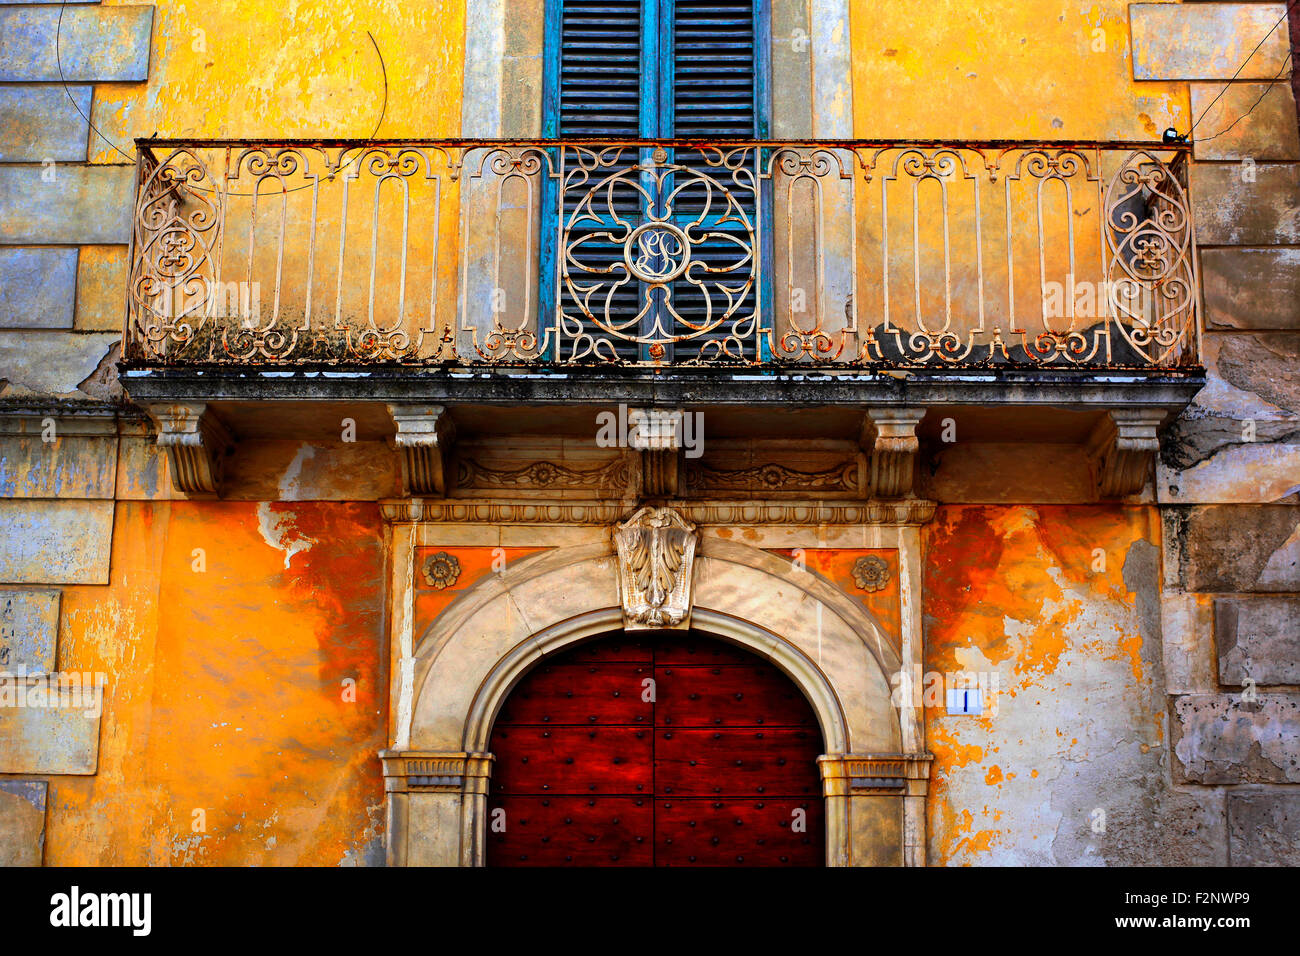 Doorway in an old building in Fontecchio in Abruzzo, Italy. - Stock Image